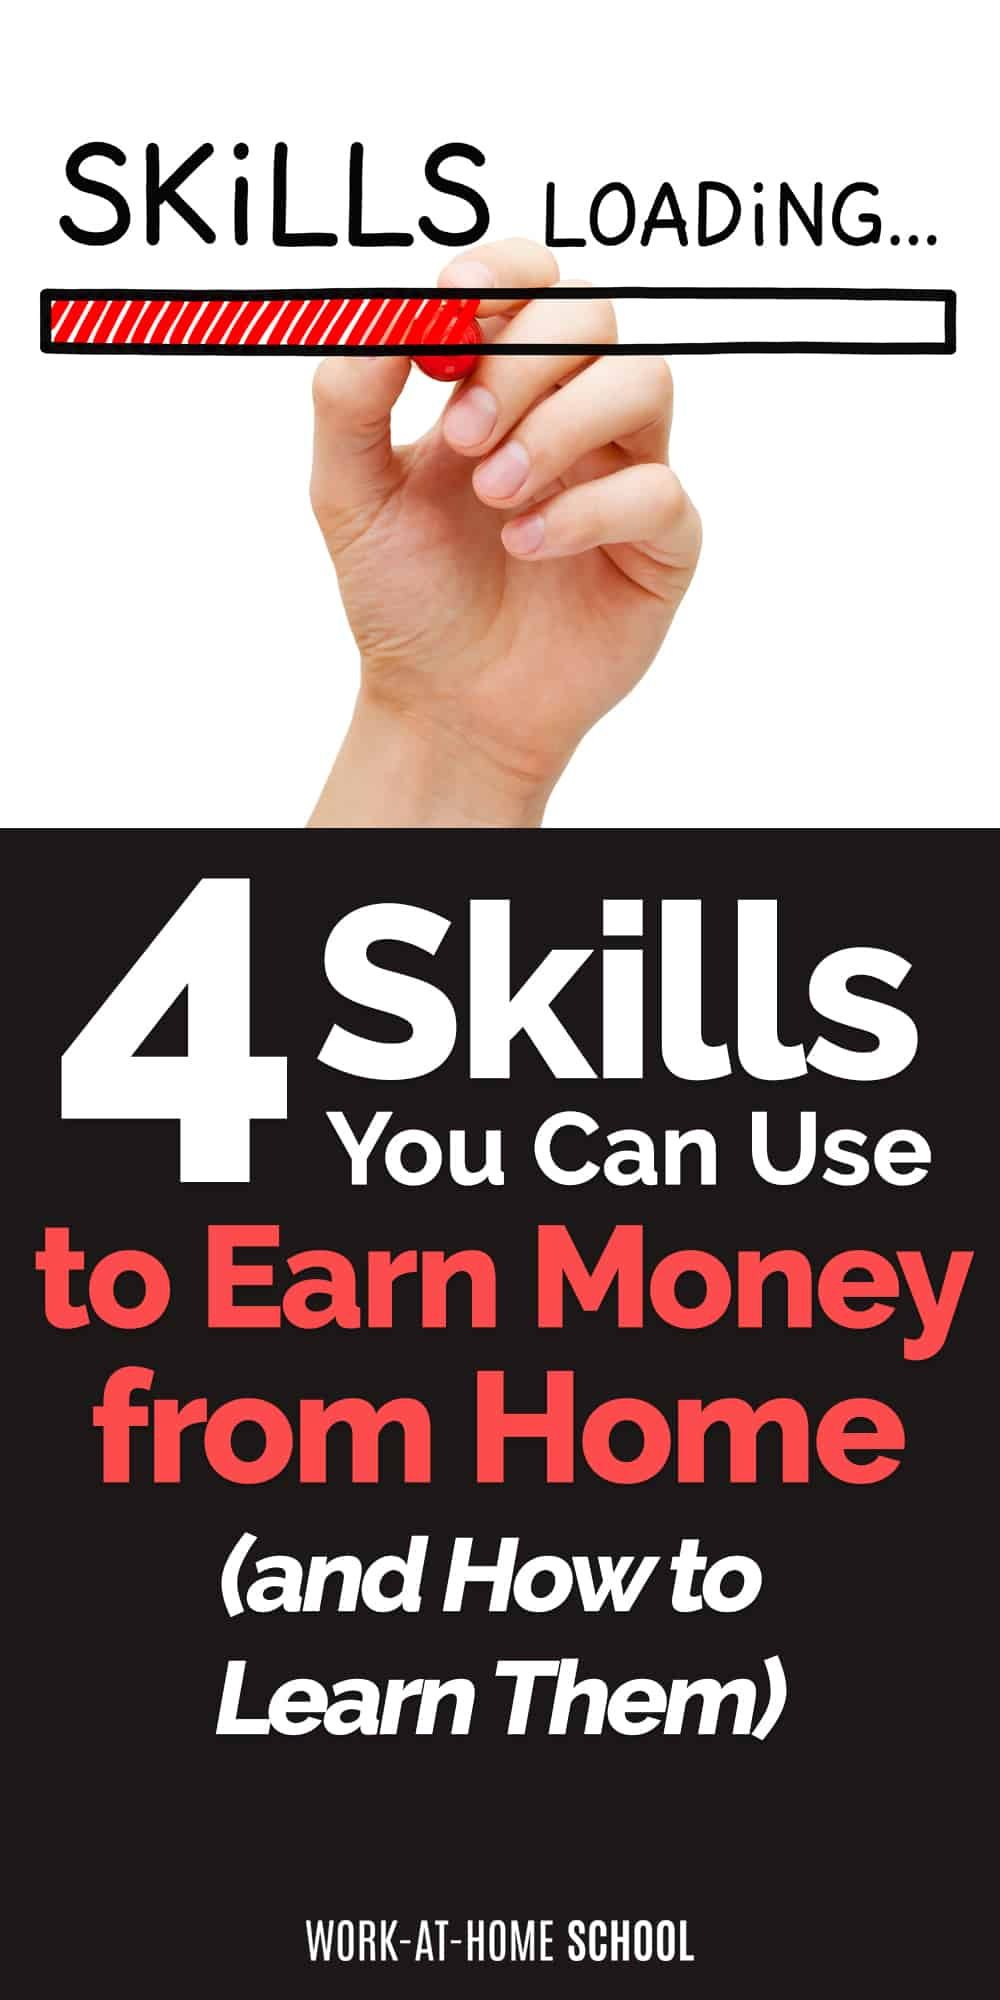 Learn the skills you need to earn money from home!